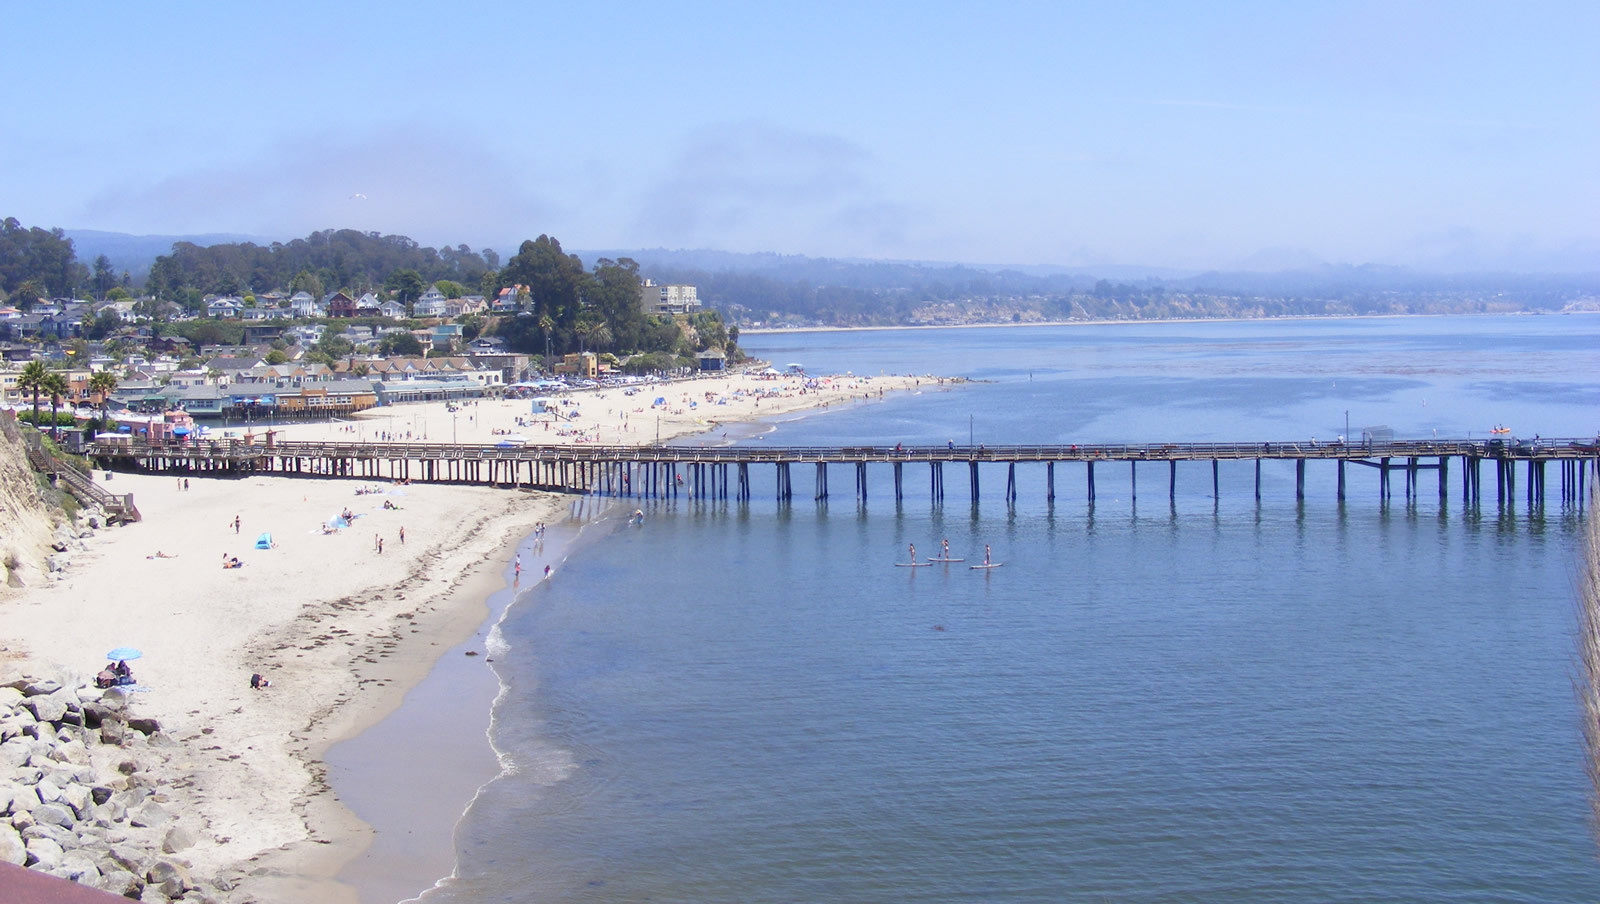 Background image of Capitola